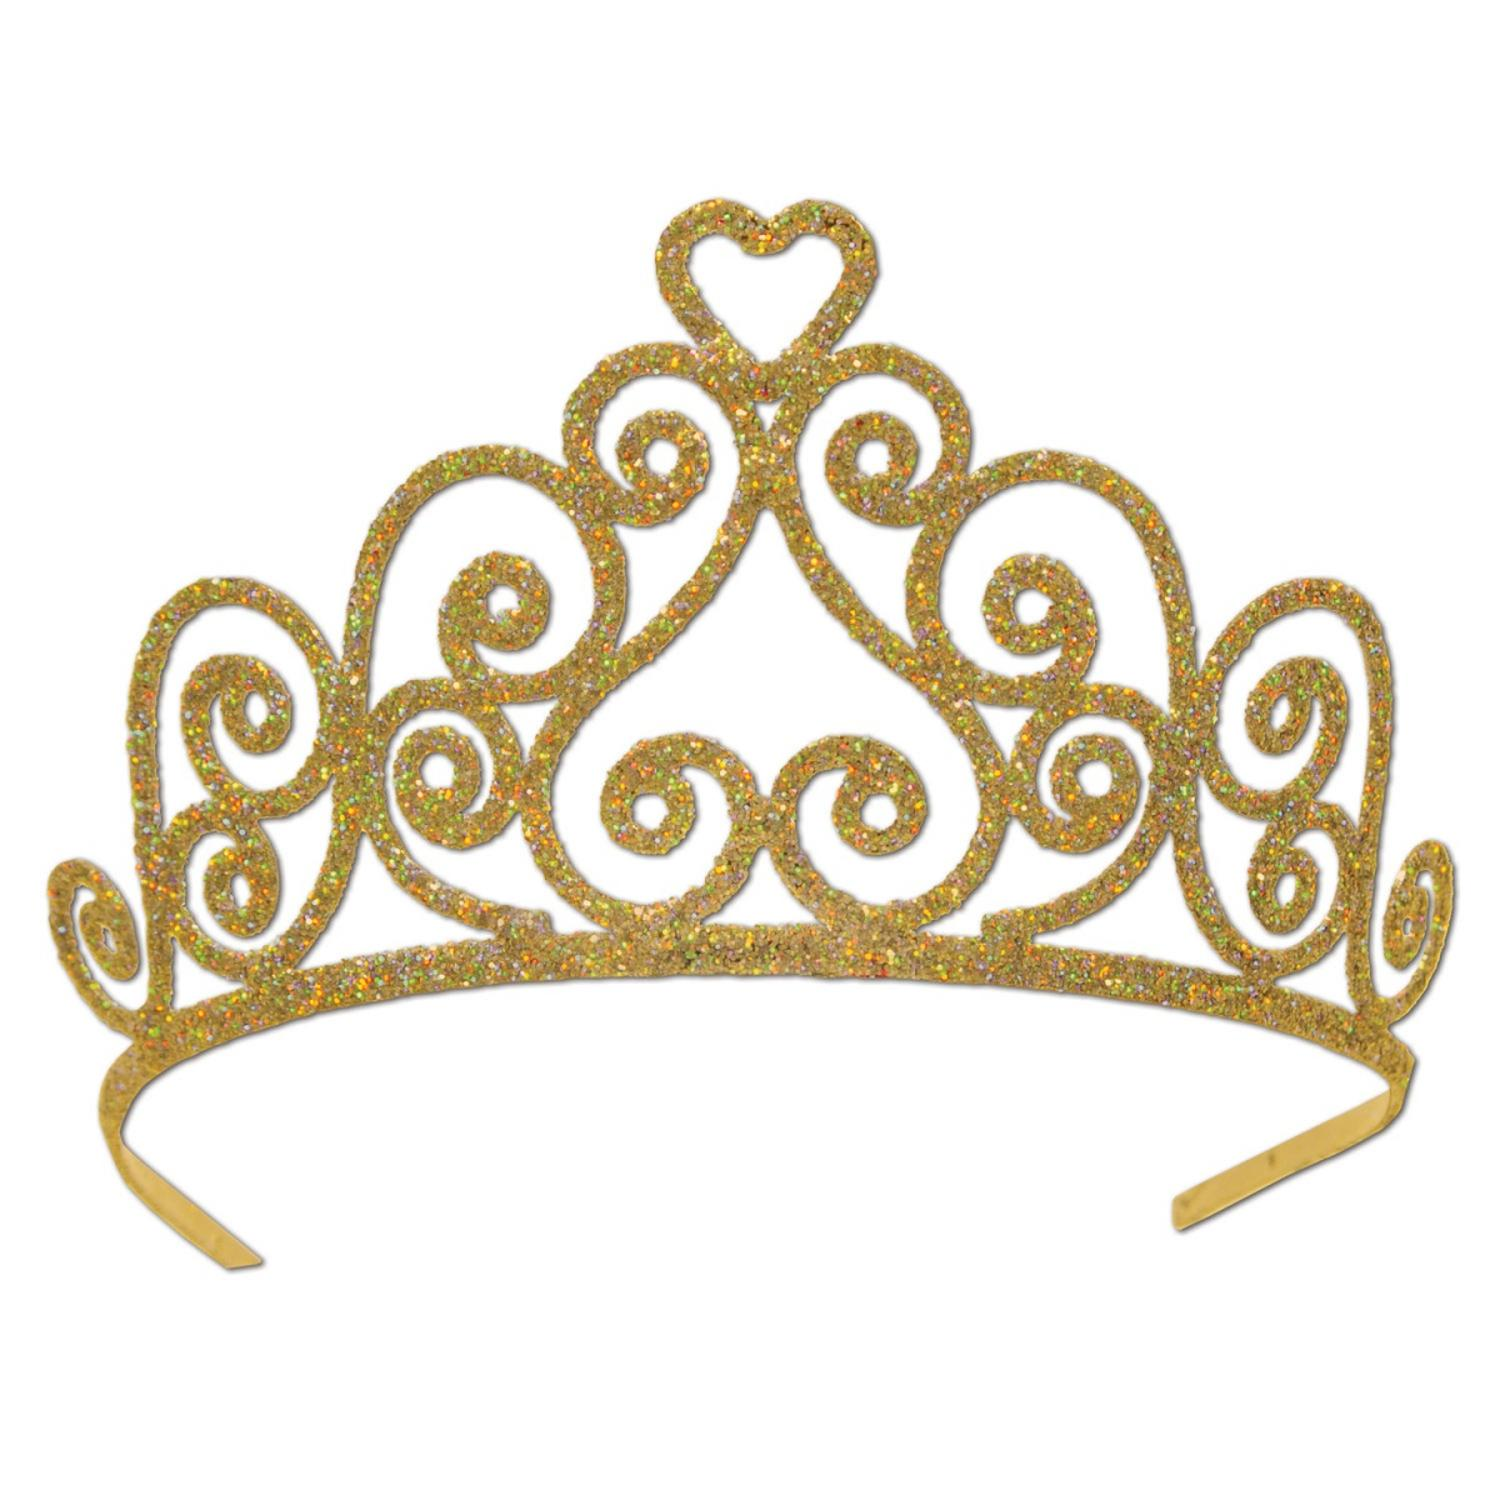 Pack of 6 Elegant Gold Glitter Encrusted Metal Heart Princess Tiara Costume